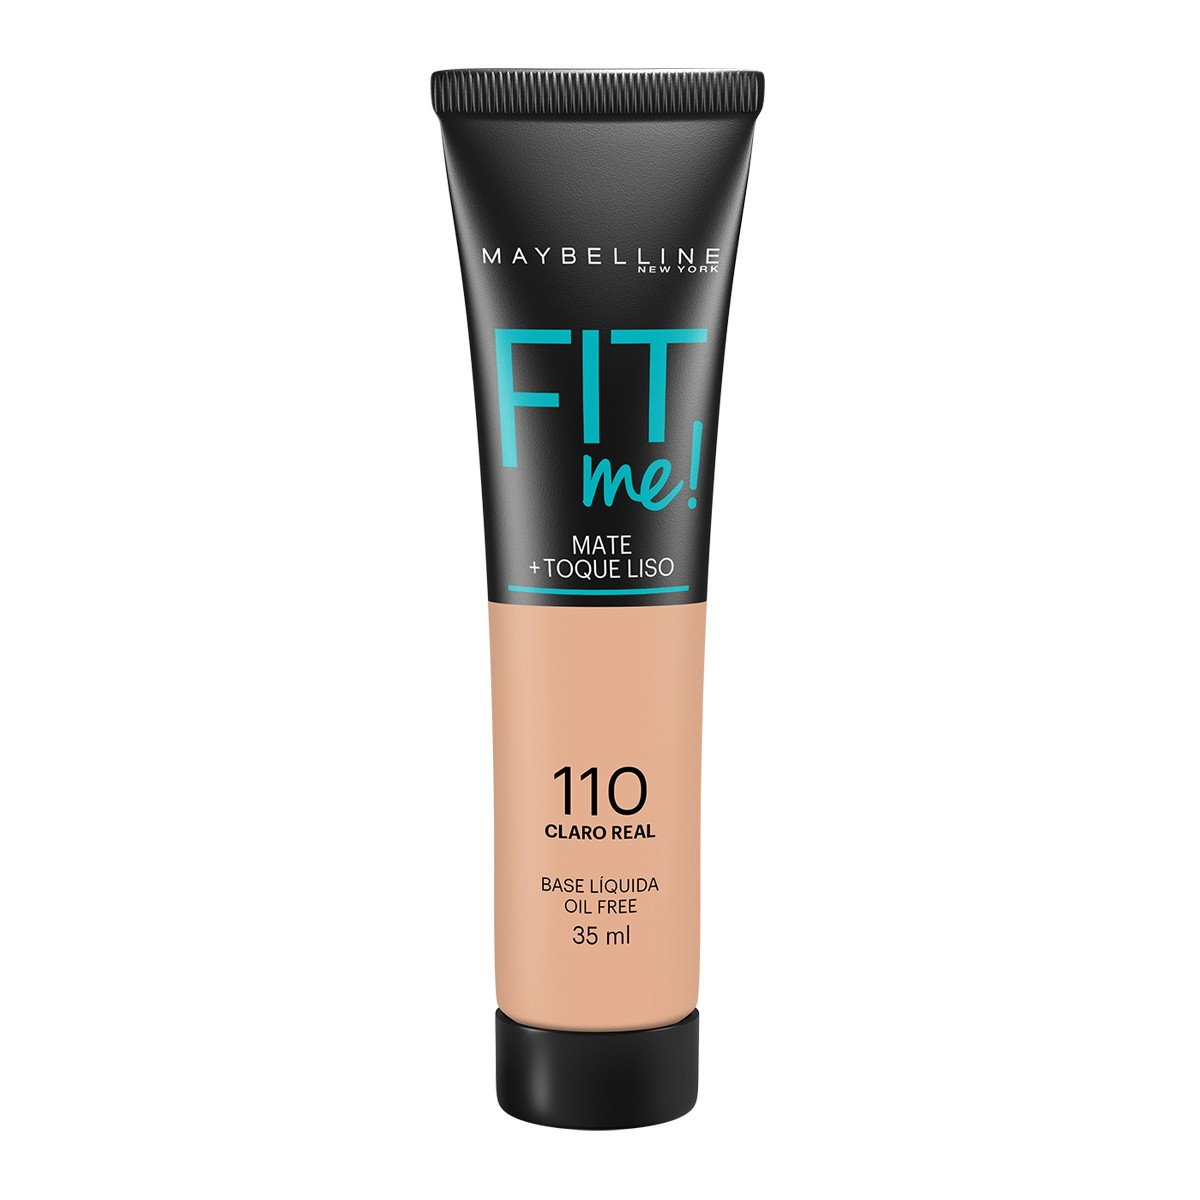 Base Liquida Maybelline Fit Me Nº 110 Claro Real Maybelline 35ml - brand